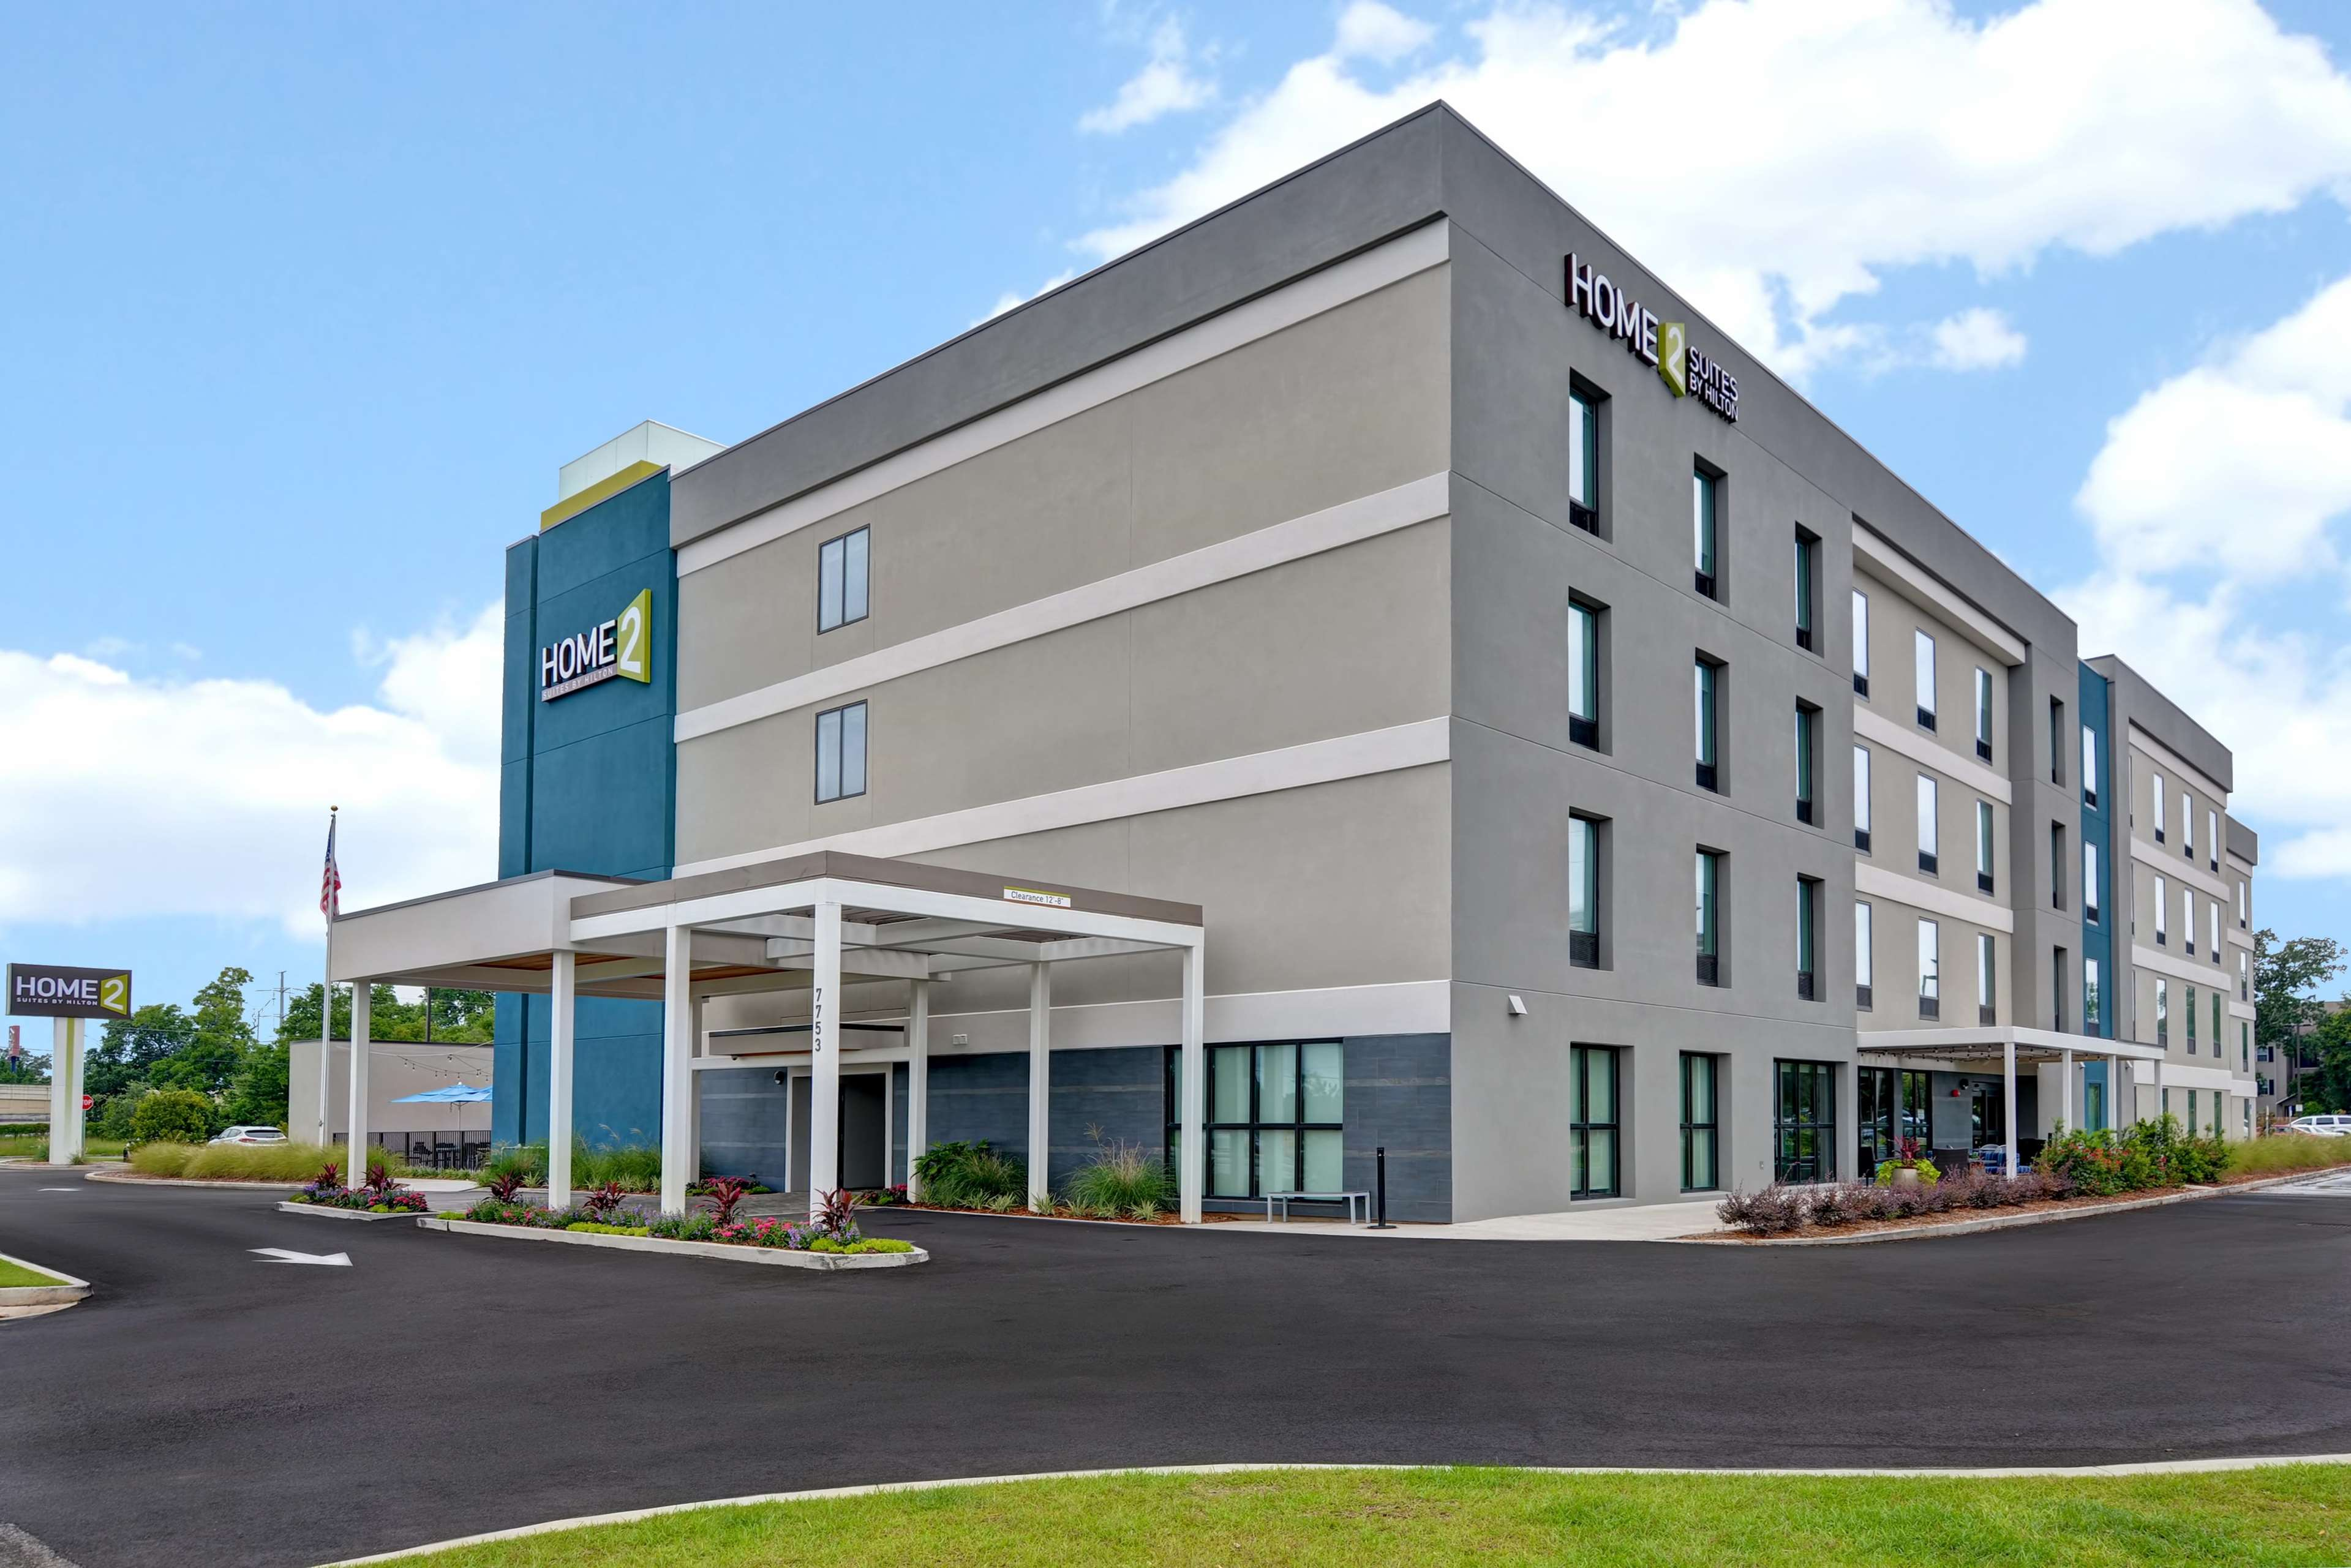 Home2 Suites by Hilton Pensacola I-10 at North Davis Hwy image 6